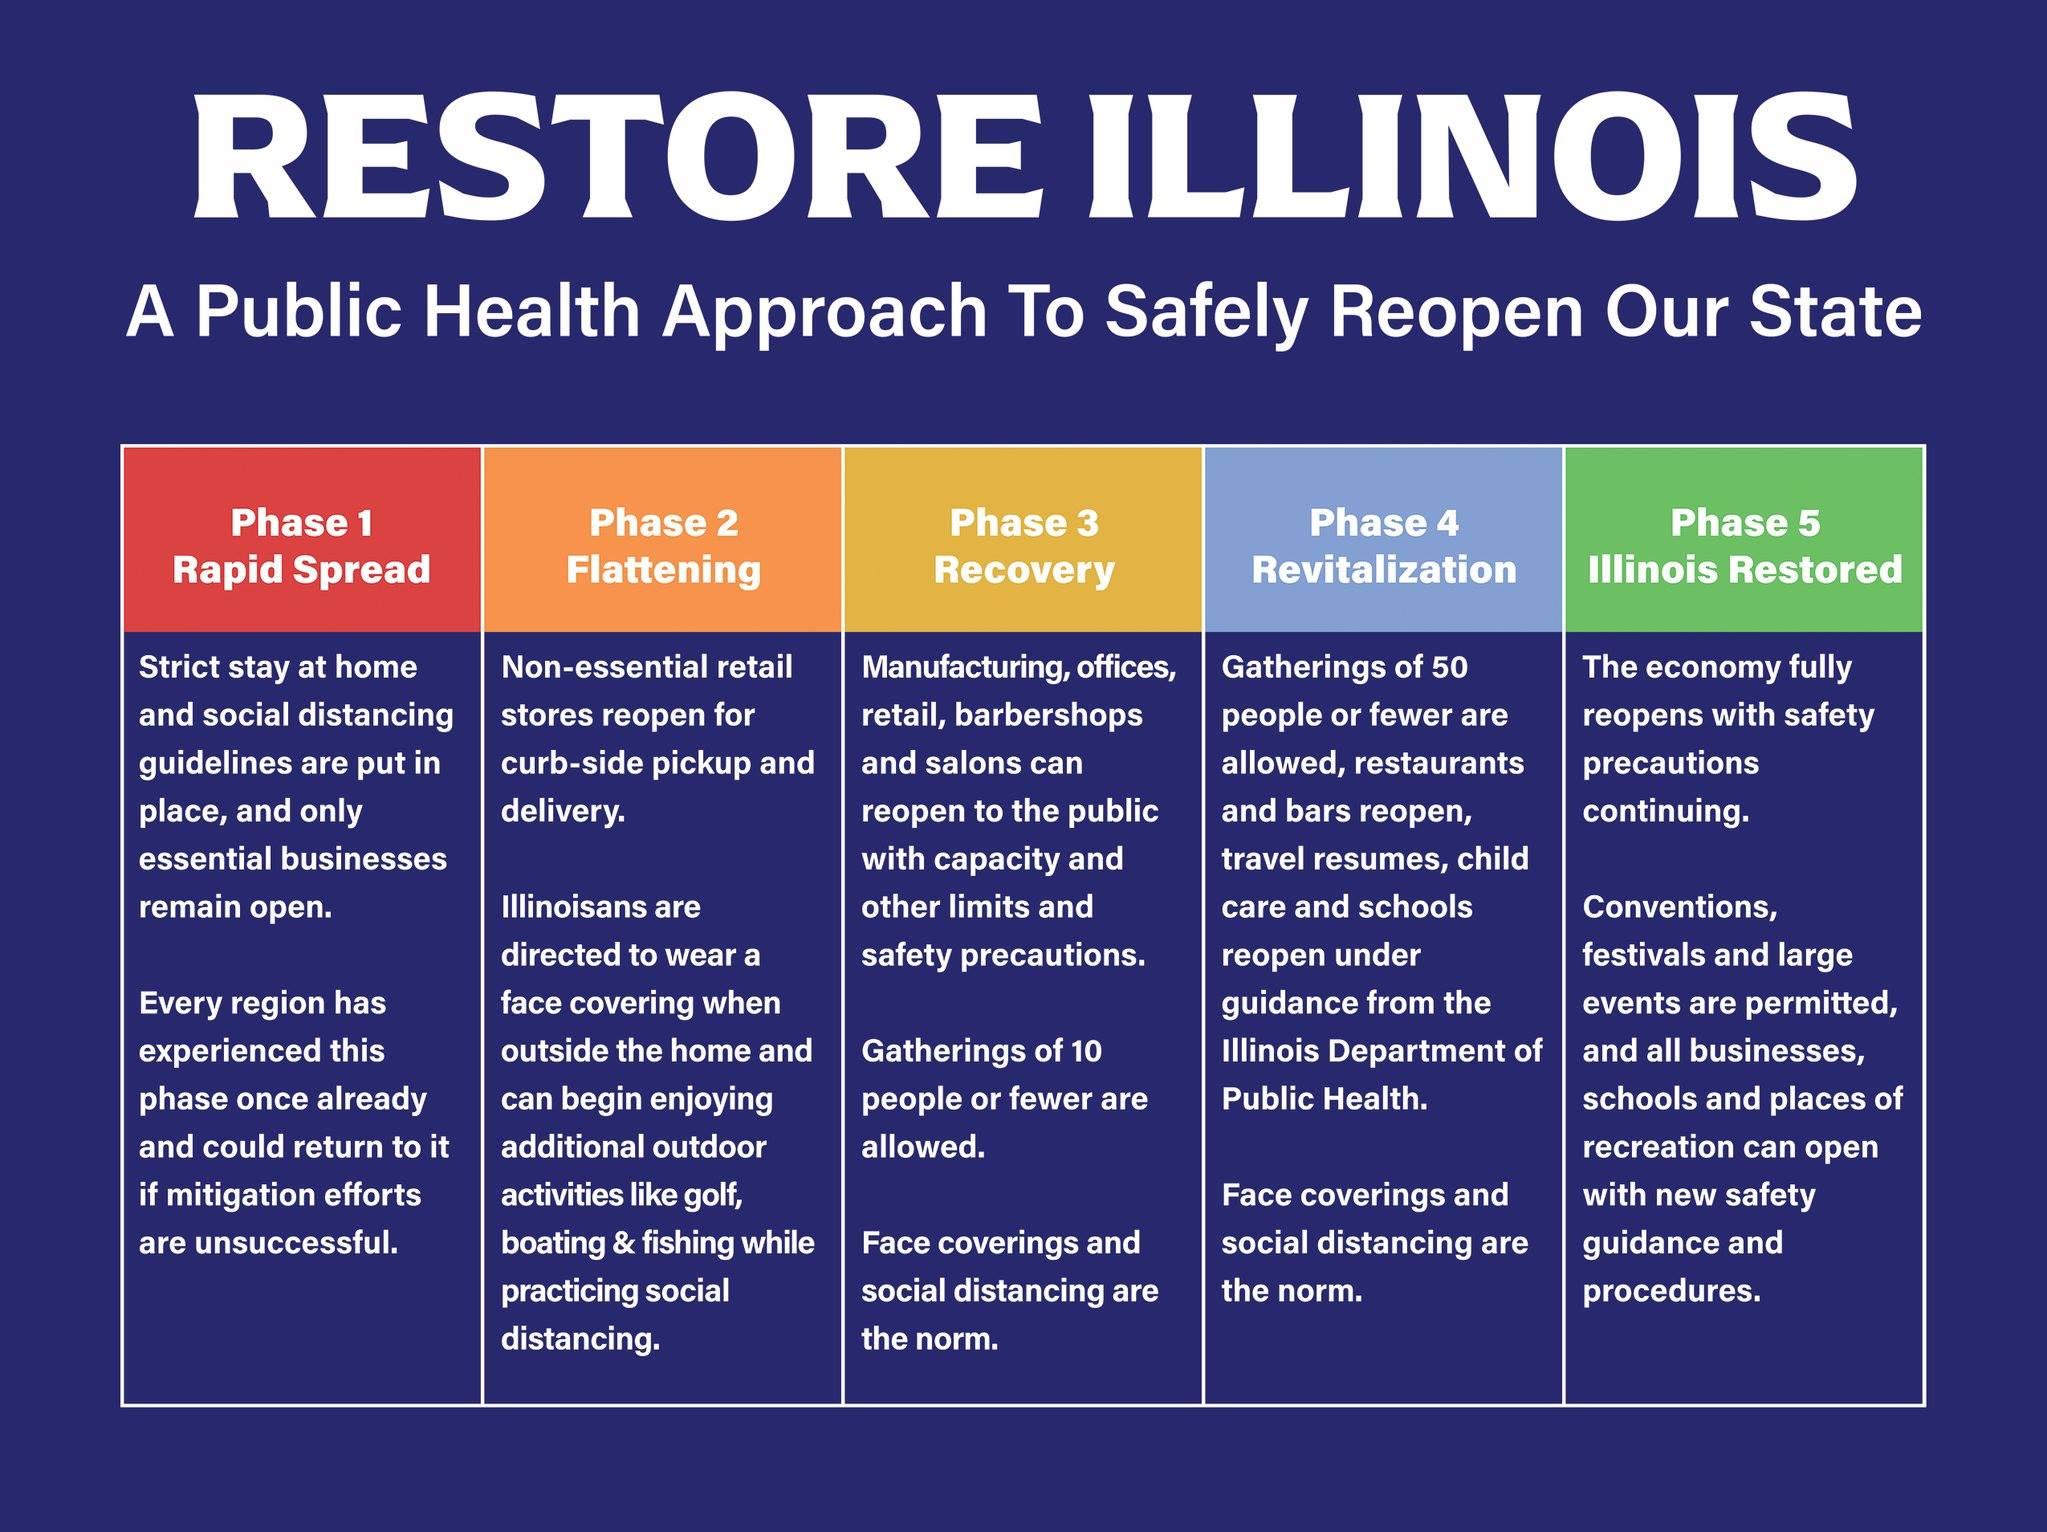 graphic rendering of the 4 phases of the Restore Illinois Plan